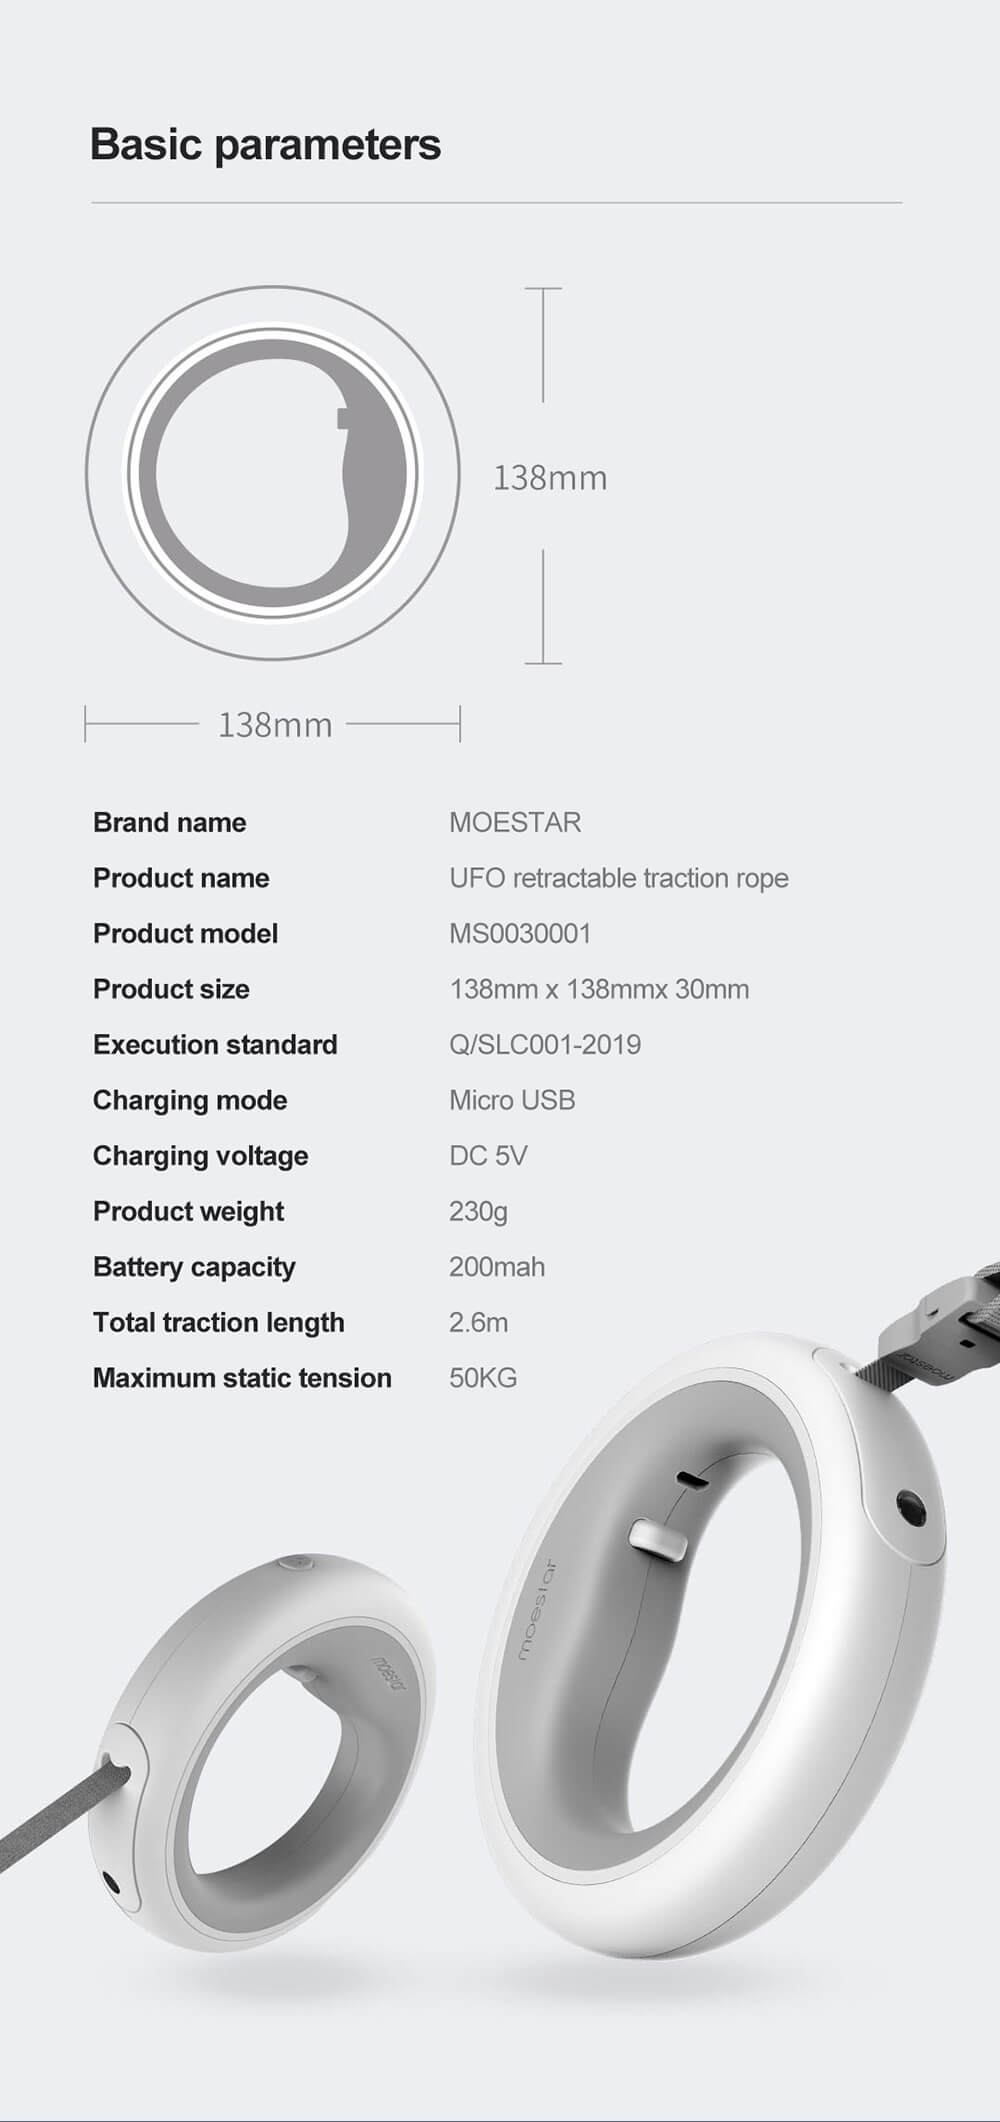 xiaomi moestar smart dog leash specification